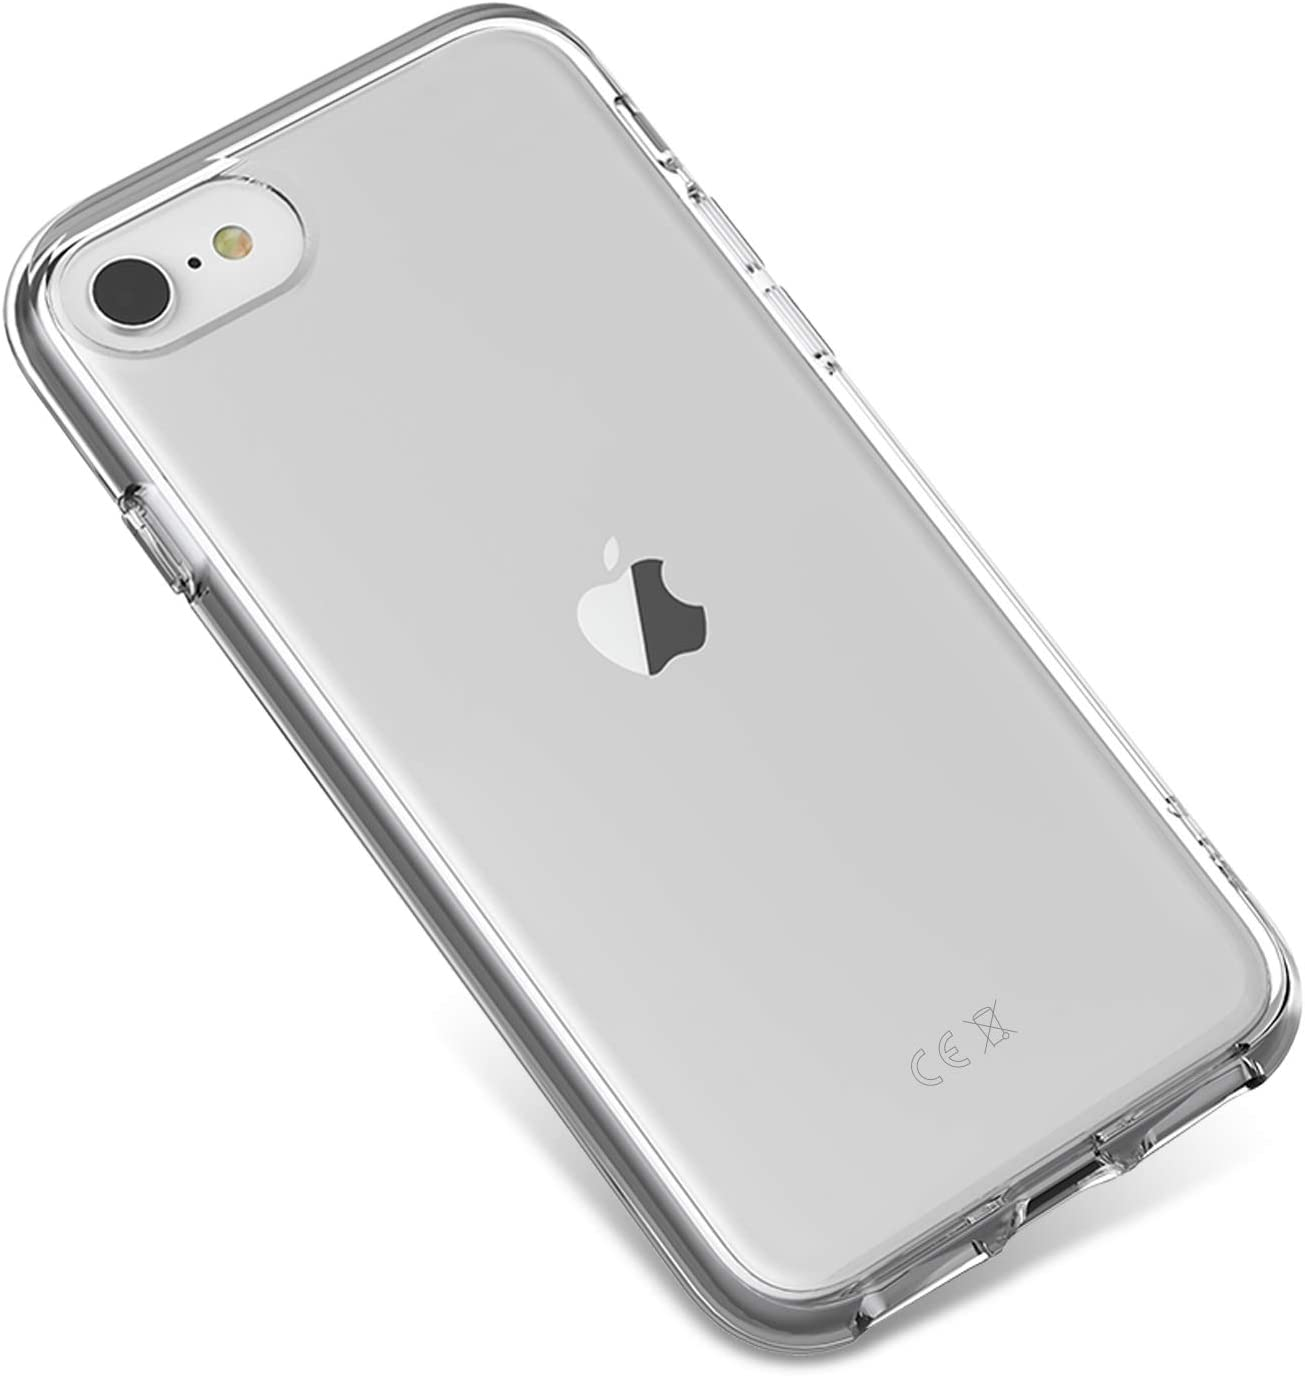 Mous - Transparent Clear Protective Case for iPhone SE/8/7/6/6S - Clarity Lite - No Screen Protector